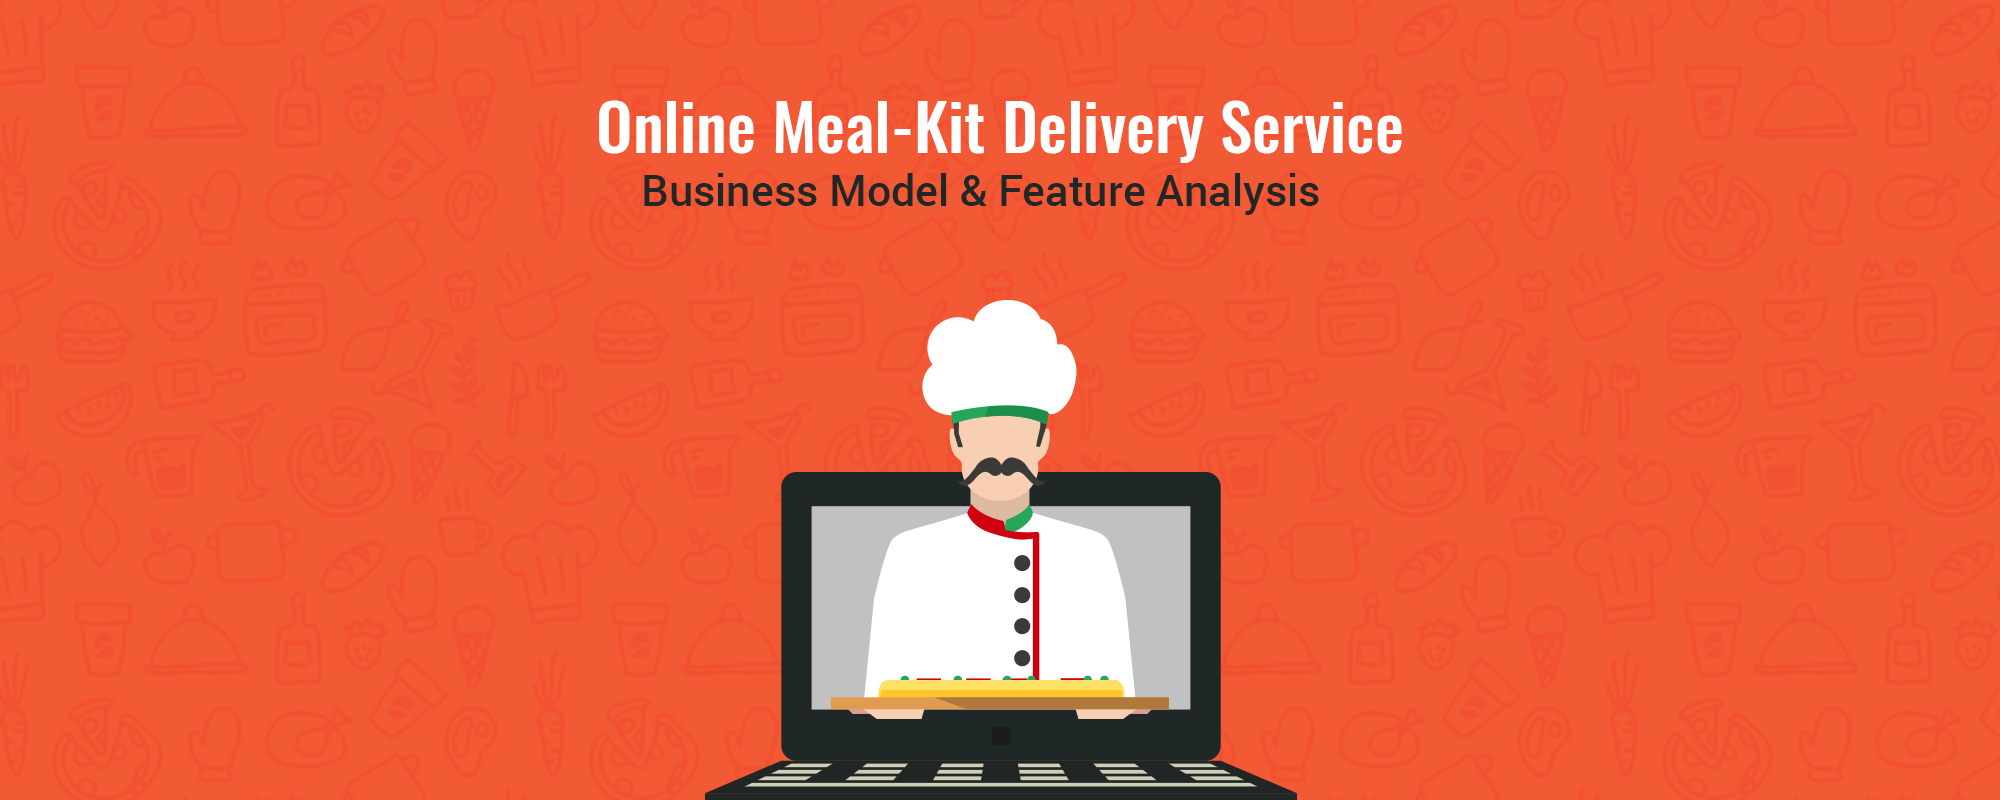 Become the Next Big Name in Online Meal-kit Delivery Service by Adding These Features